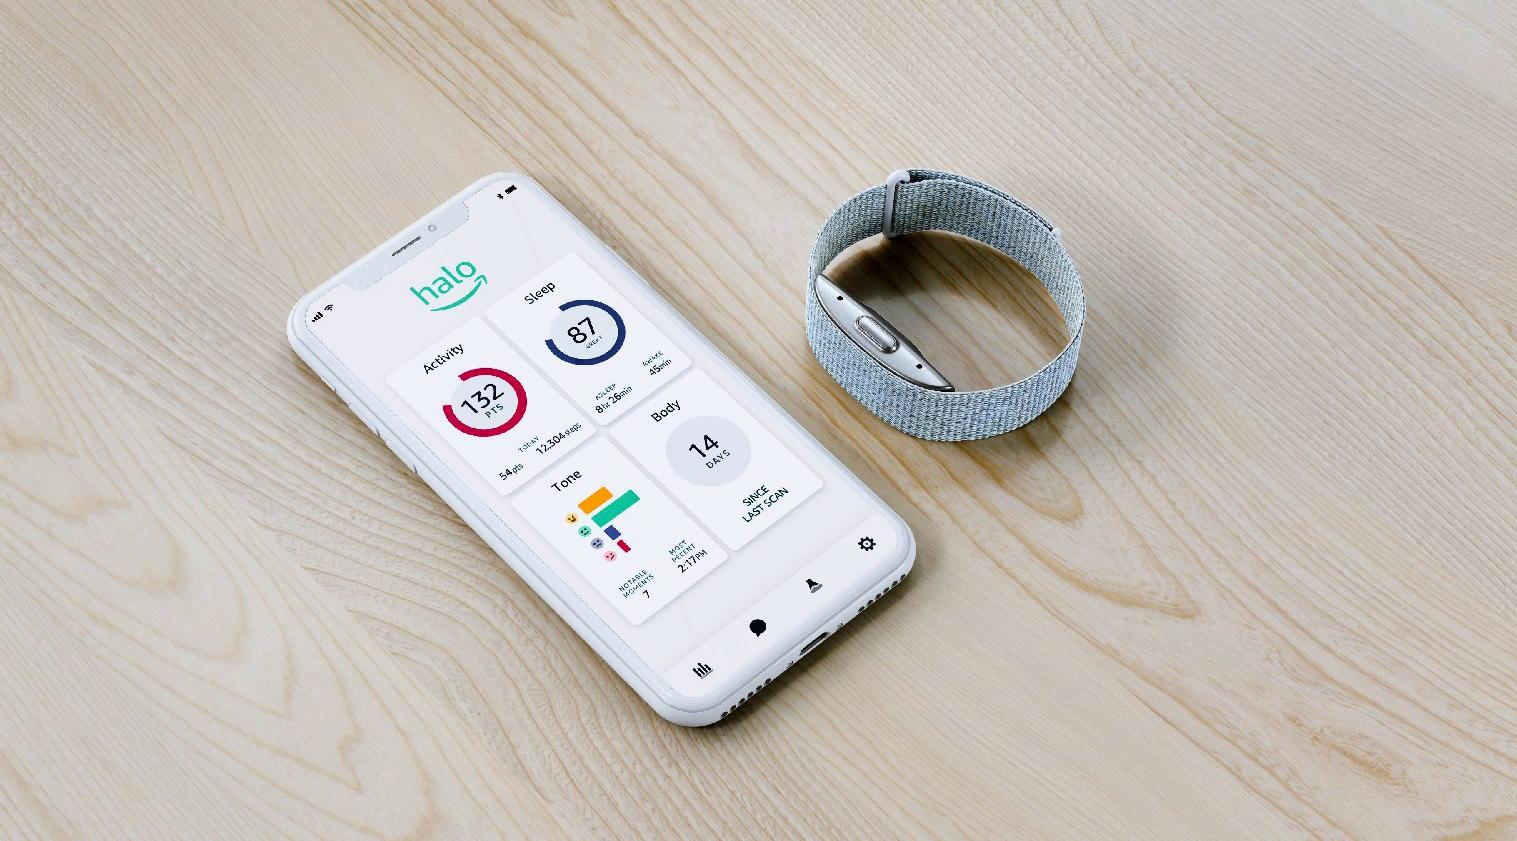 The Amazon Halo app shown on a phone screen next to a wrist-worn wearable.